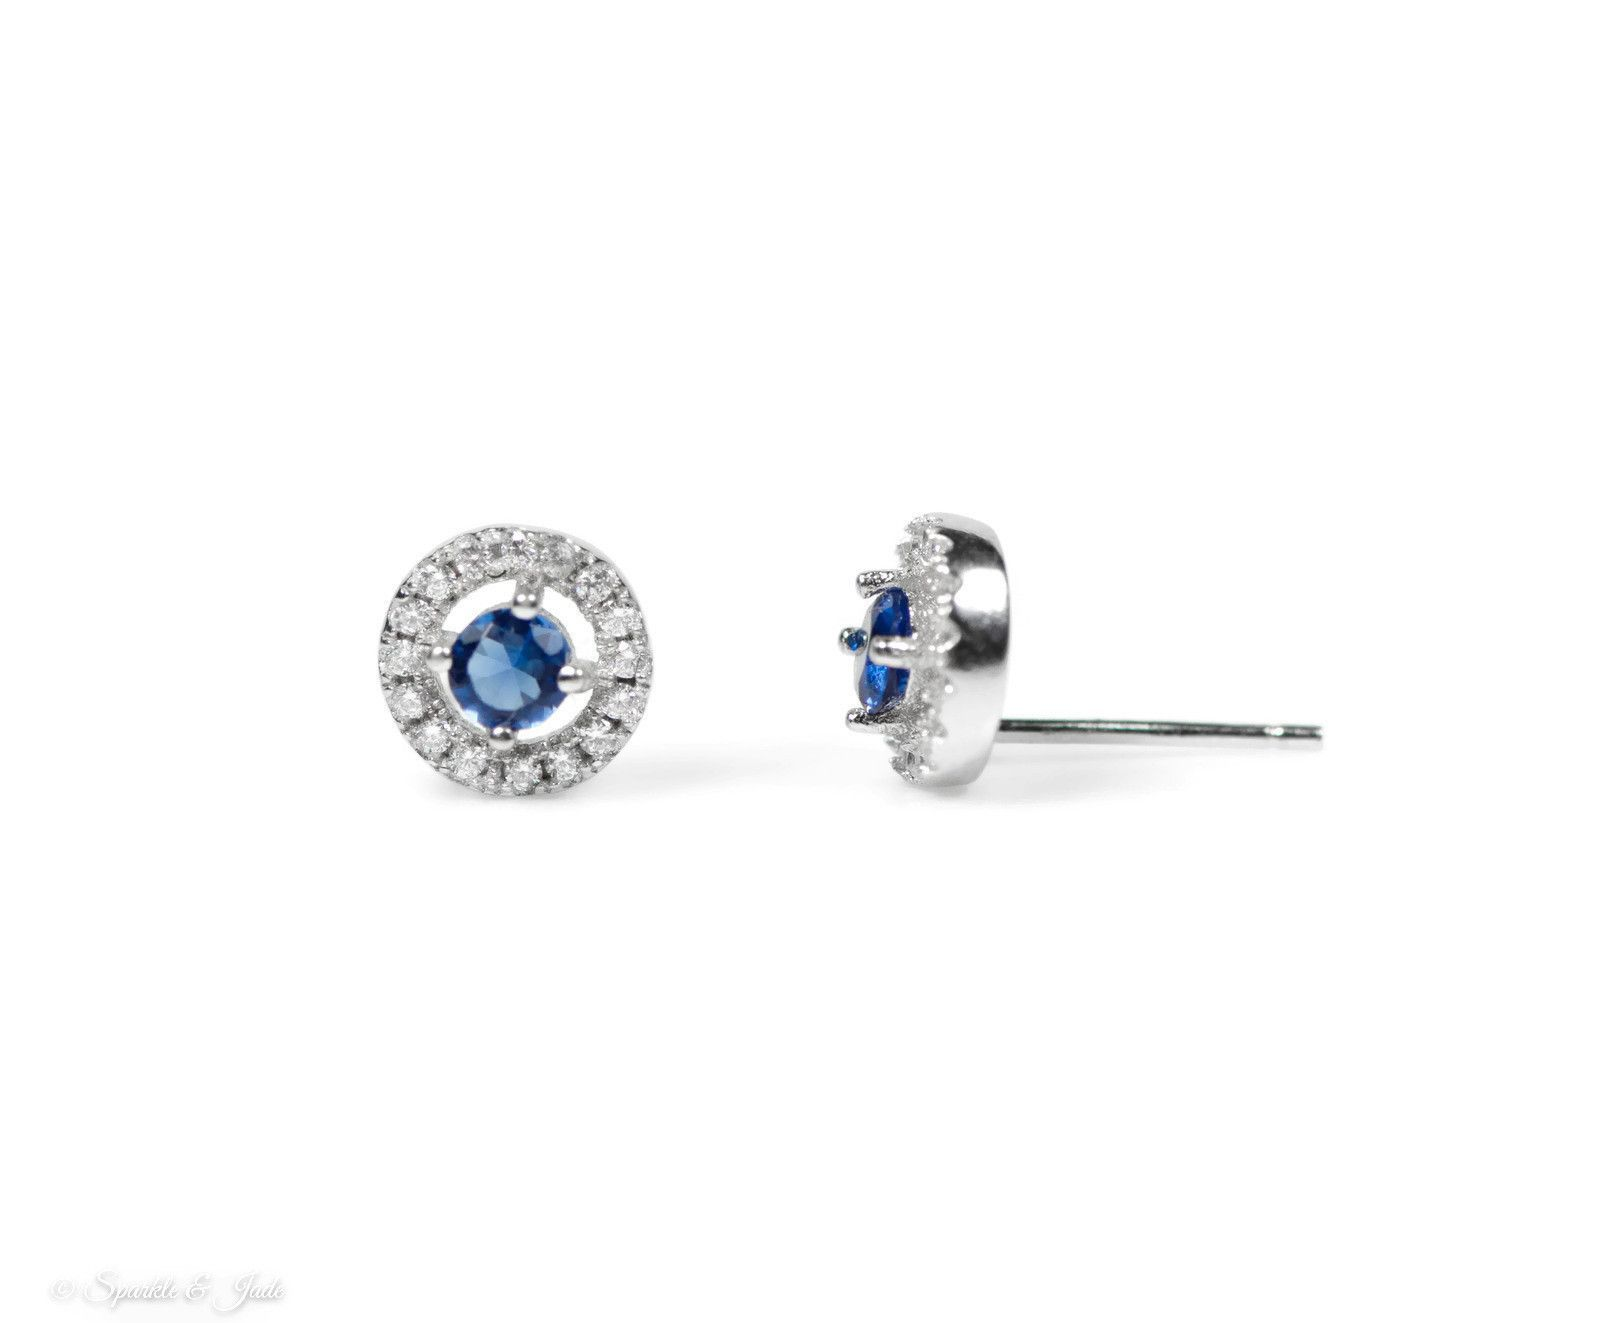 Sterling Silver Blue and White Halo Earrings